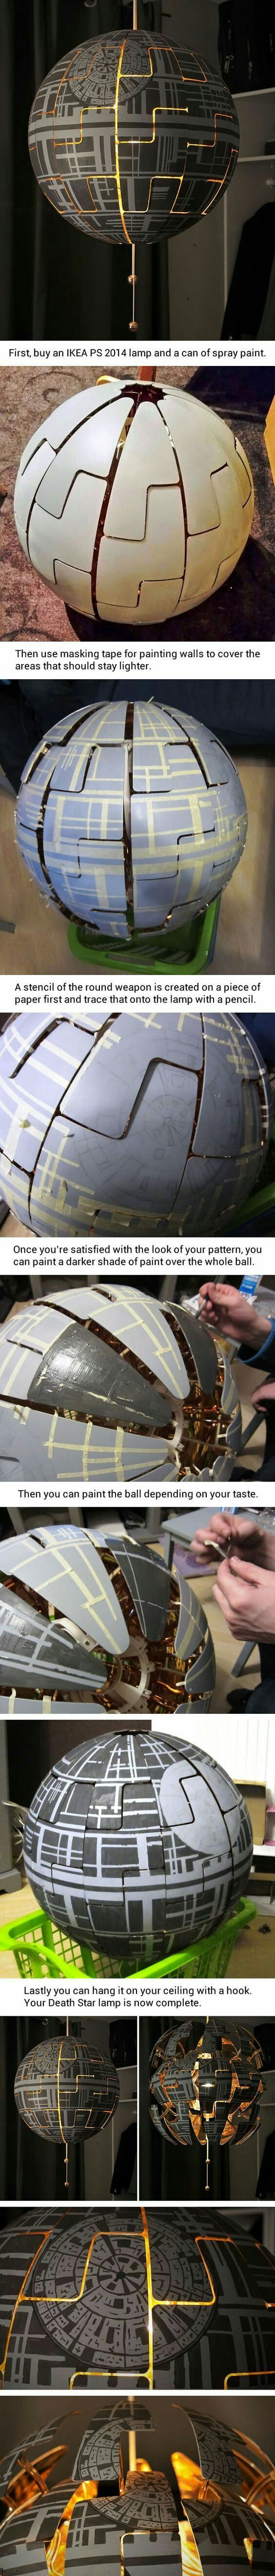 How to make your own death star lamp - Album on Imgur